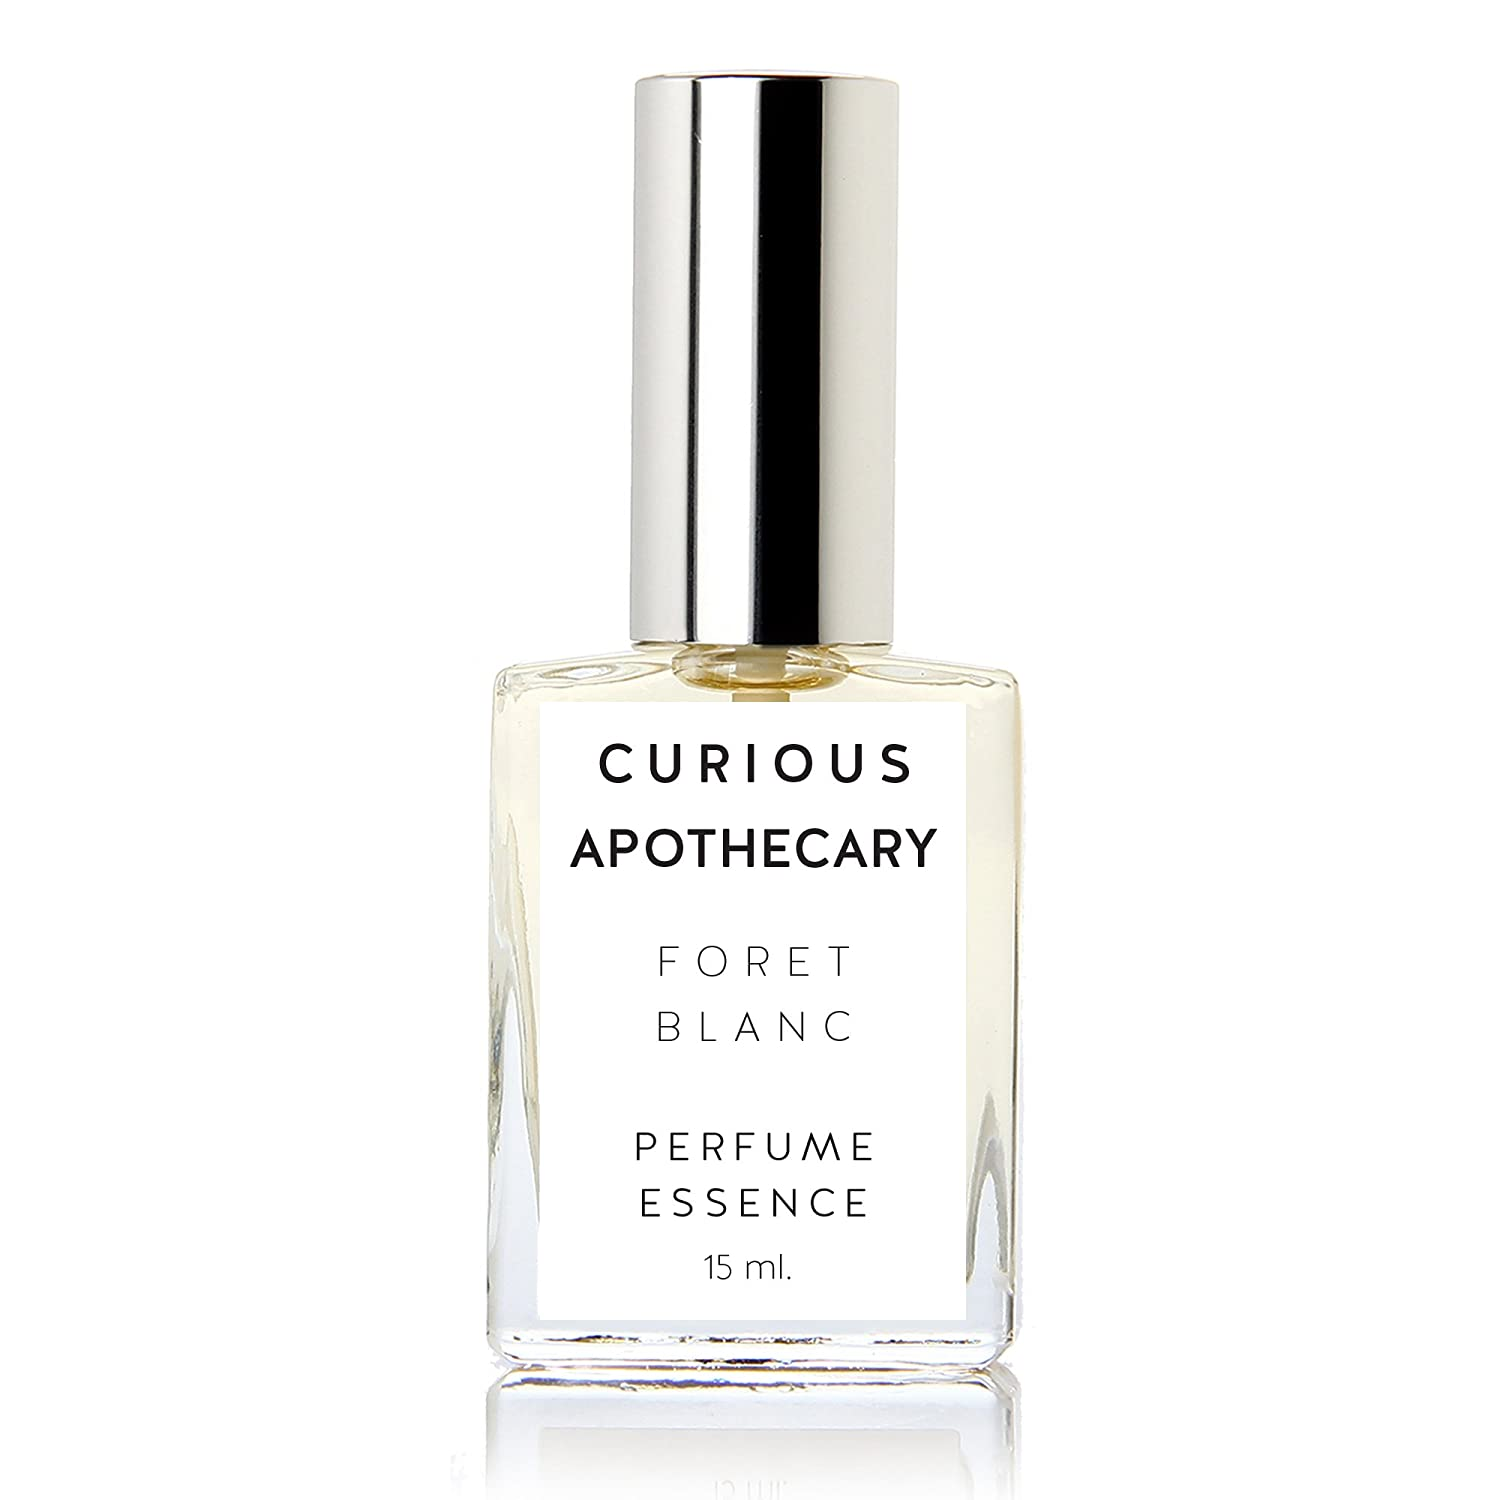 Curious Apothecary Foret Blanc Vanilla Sandalwood perfume for women. Mysore Sandalwood and vanilla fragrance 15 ml.